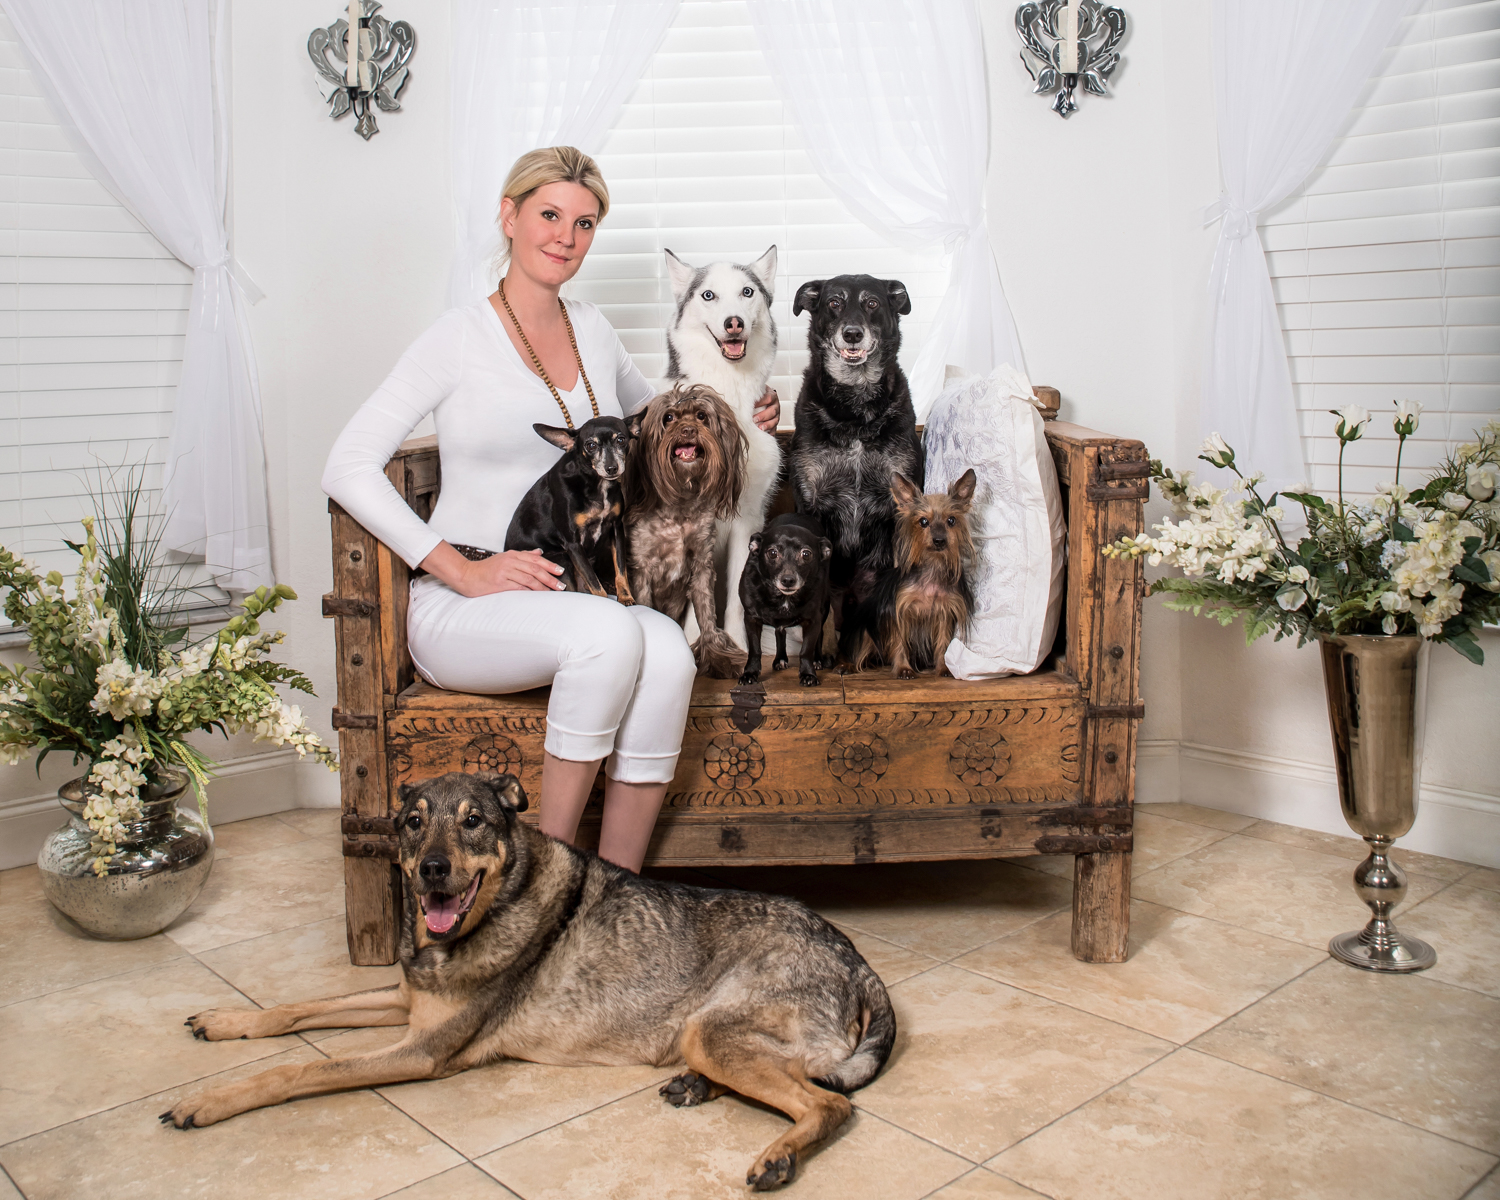 Pet owner and dogs photographer Palm Beach Gardens, FL